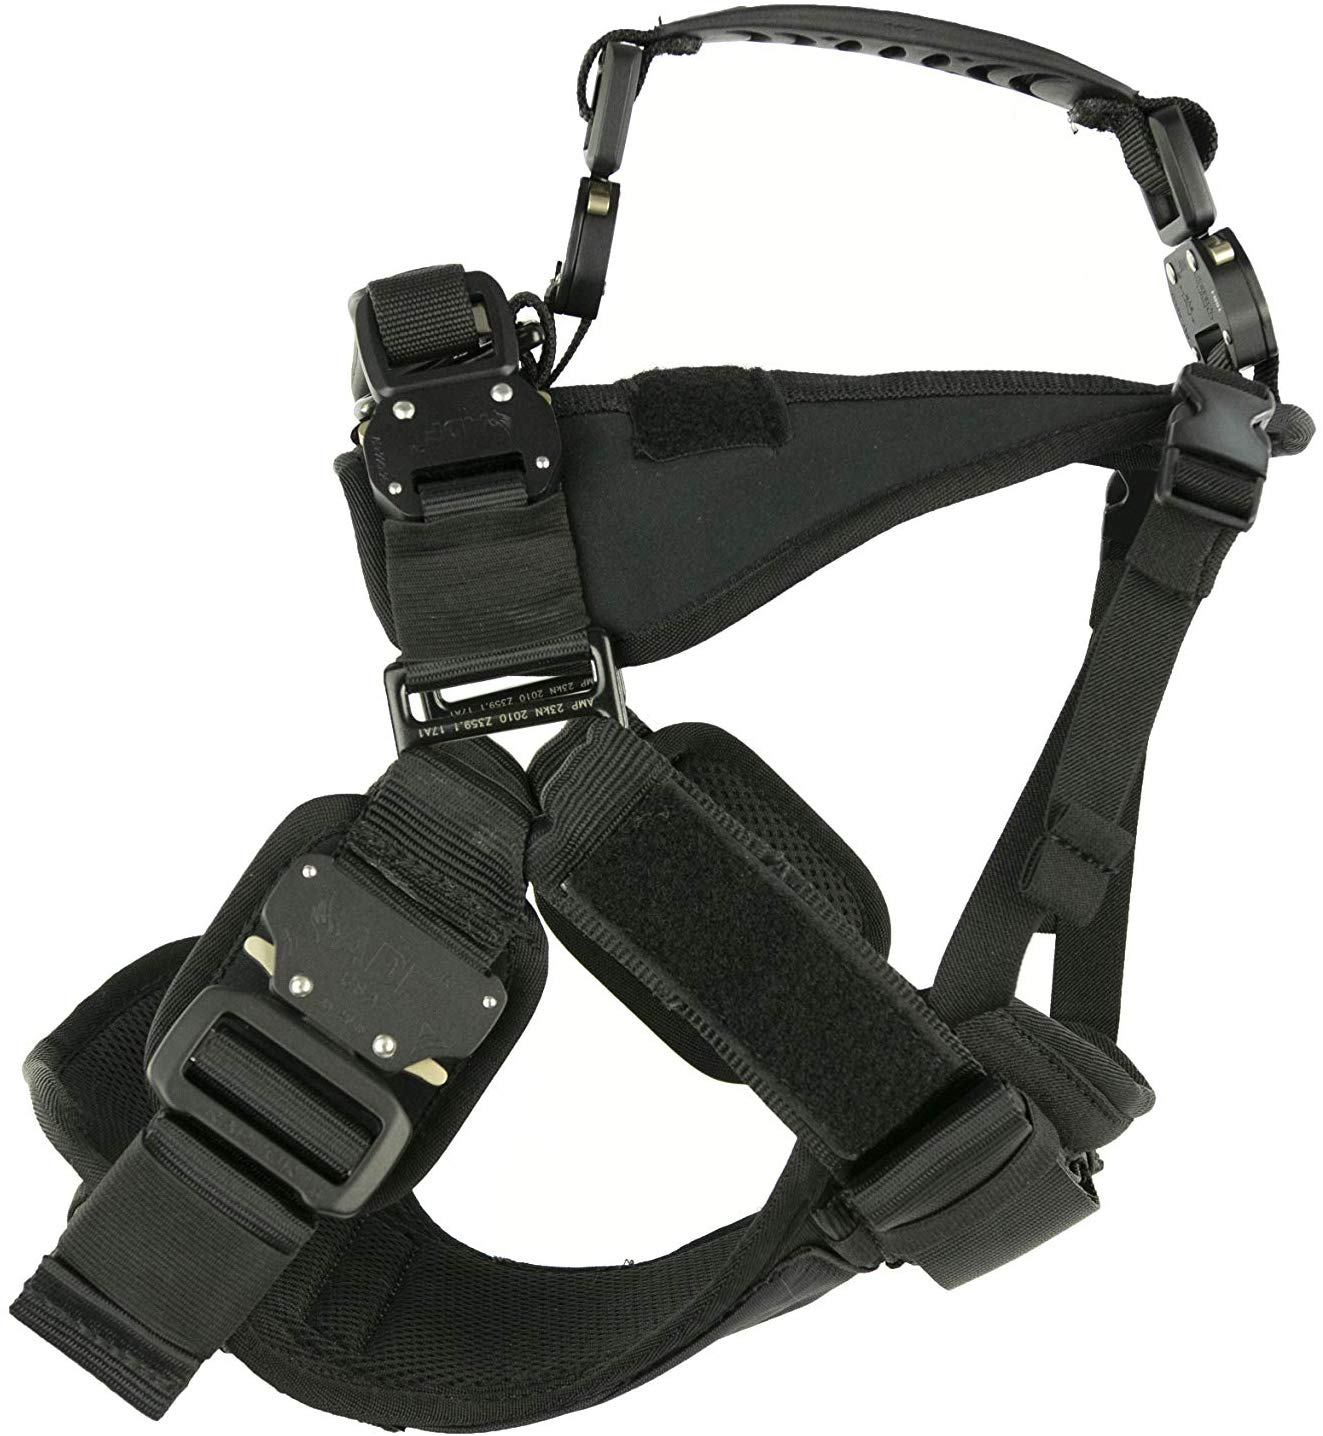 FUSION TREKKER DUAL HANDLE MILITARY GRADE K9 HARNESS